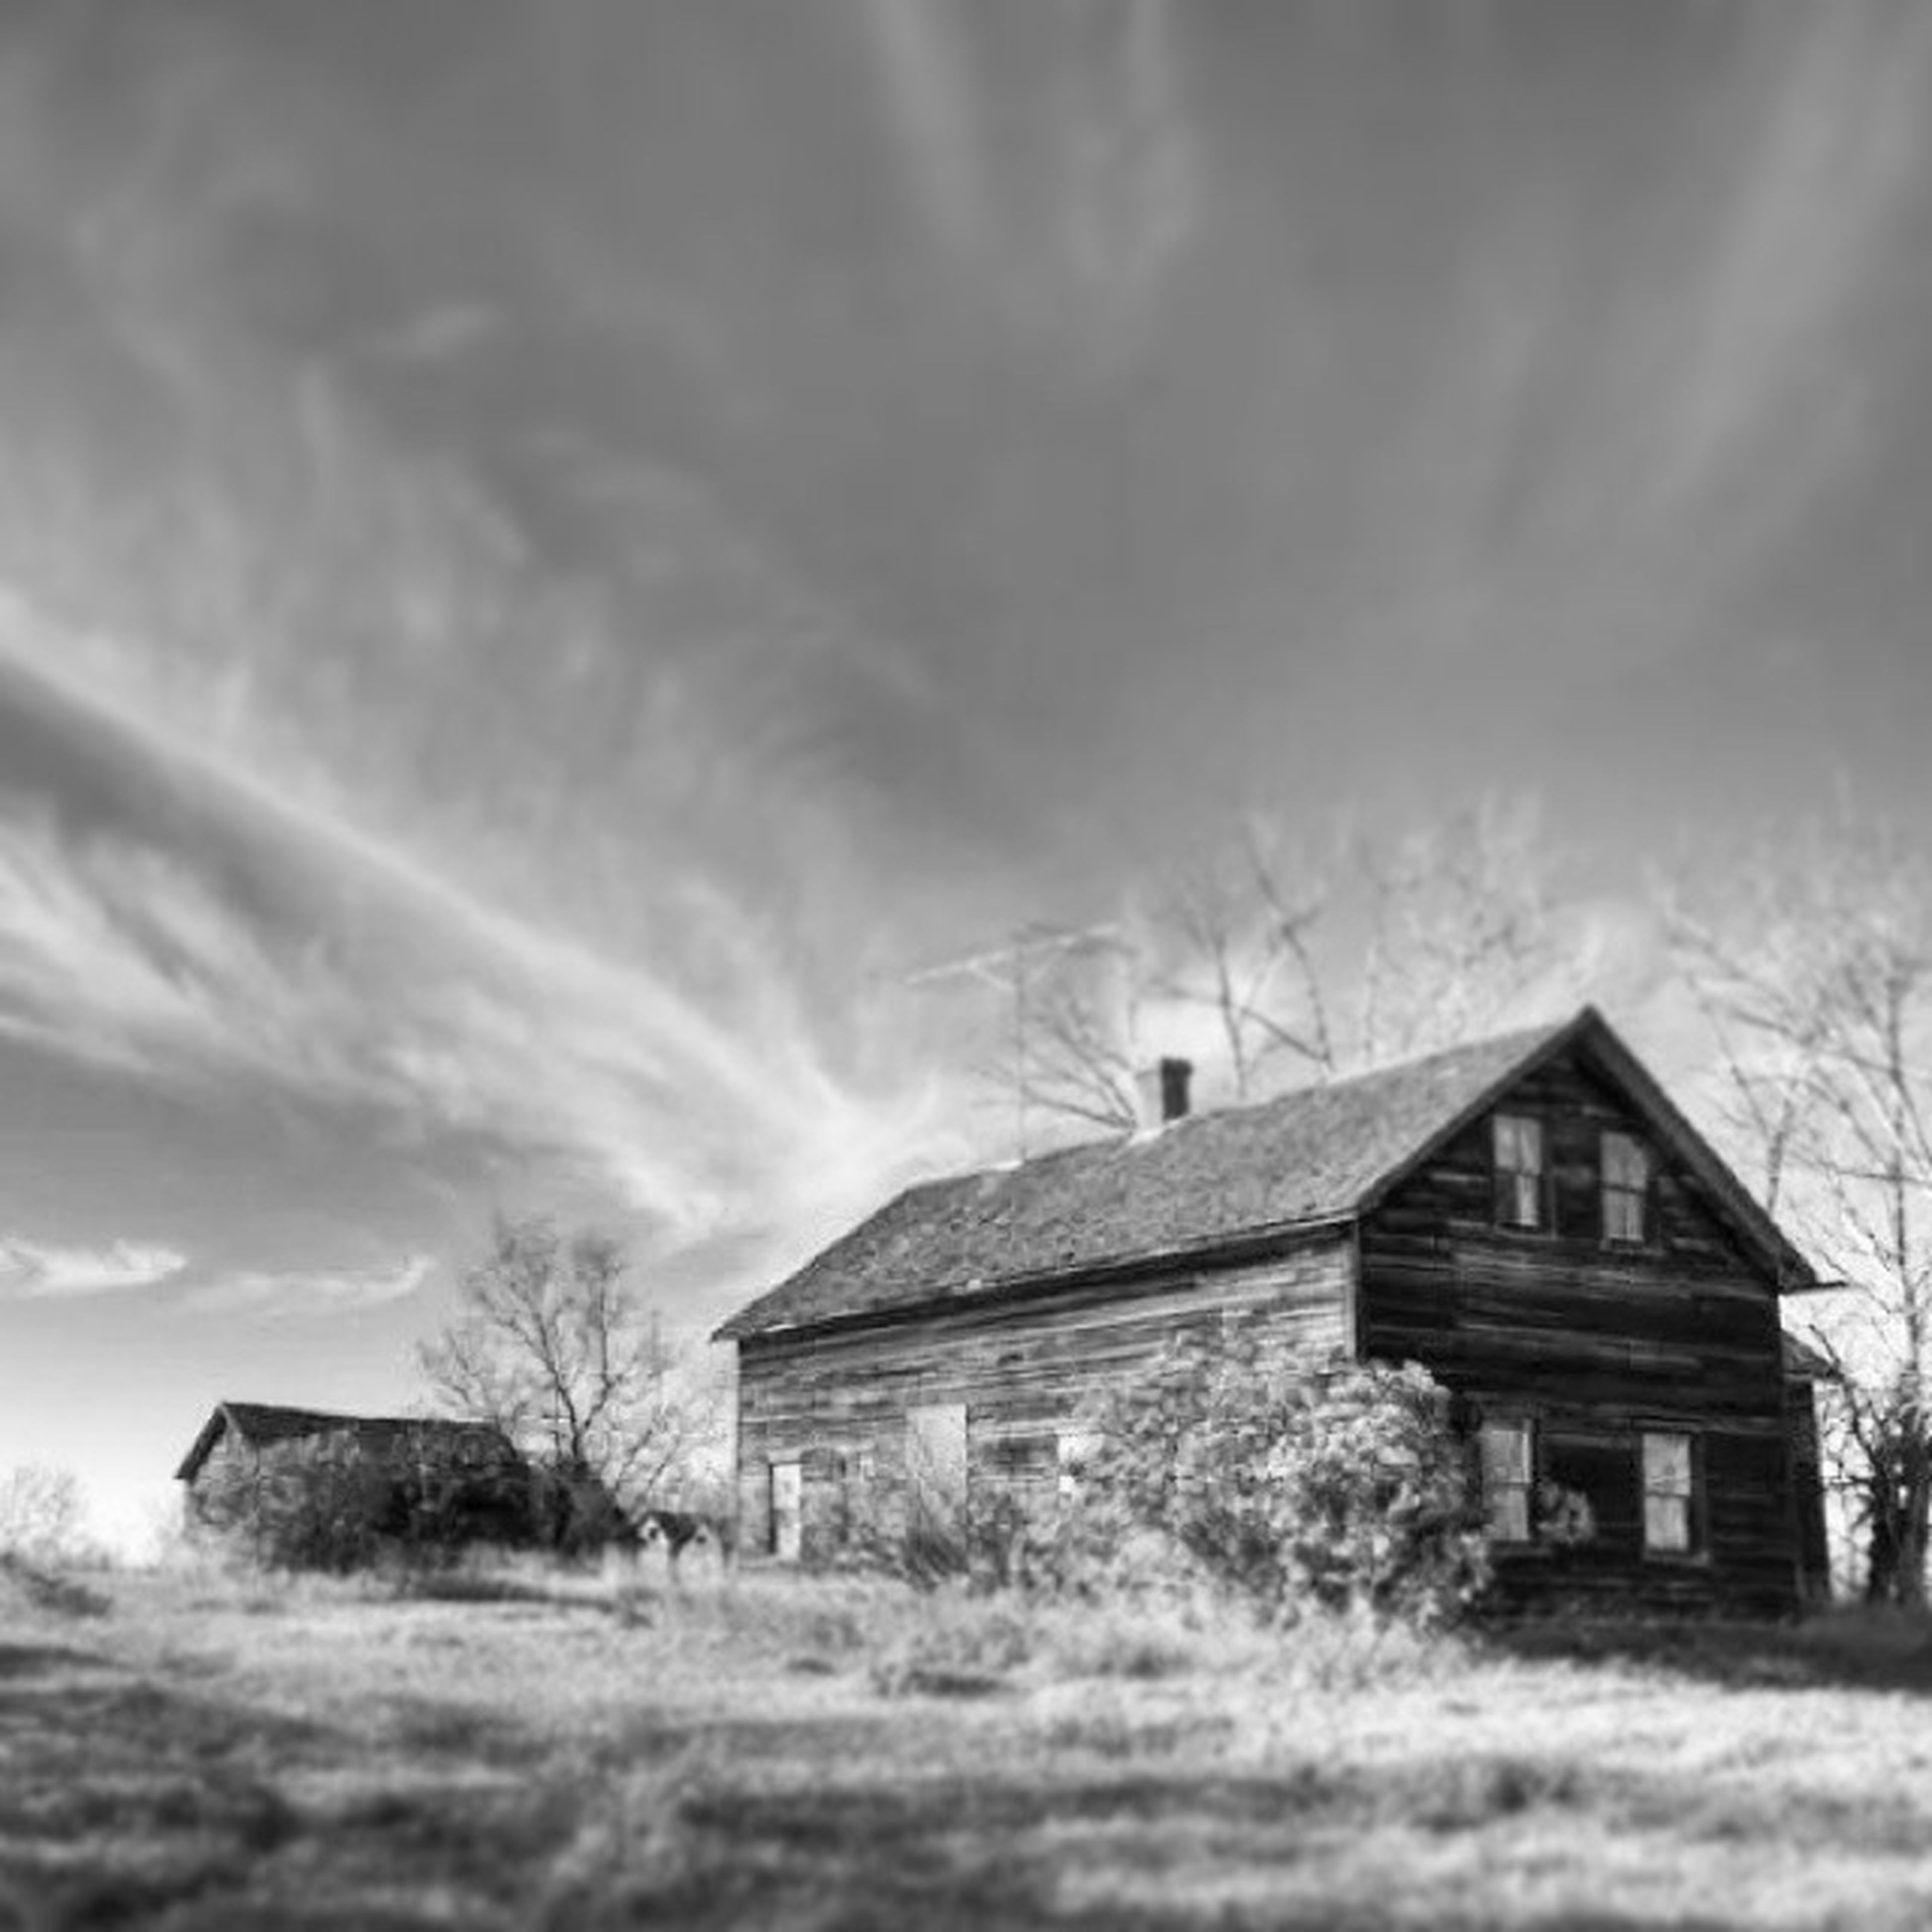 building exterior, architecture, built structure, house, sky, field, cloud - sky, tree, weather, landscape, grass, residential structure, cloudy, rural scene, nature, day, cloud, outdoors, residential building, transportation